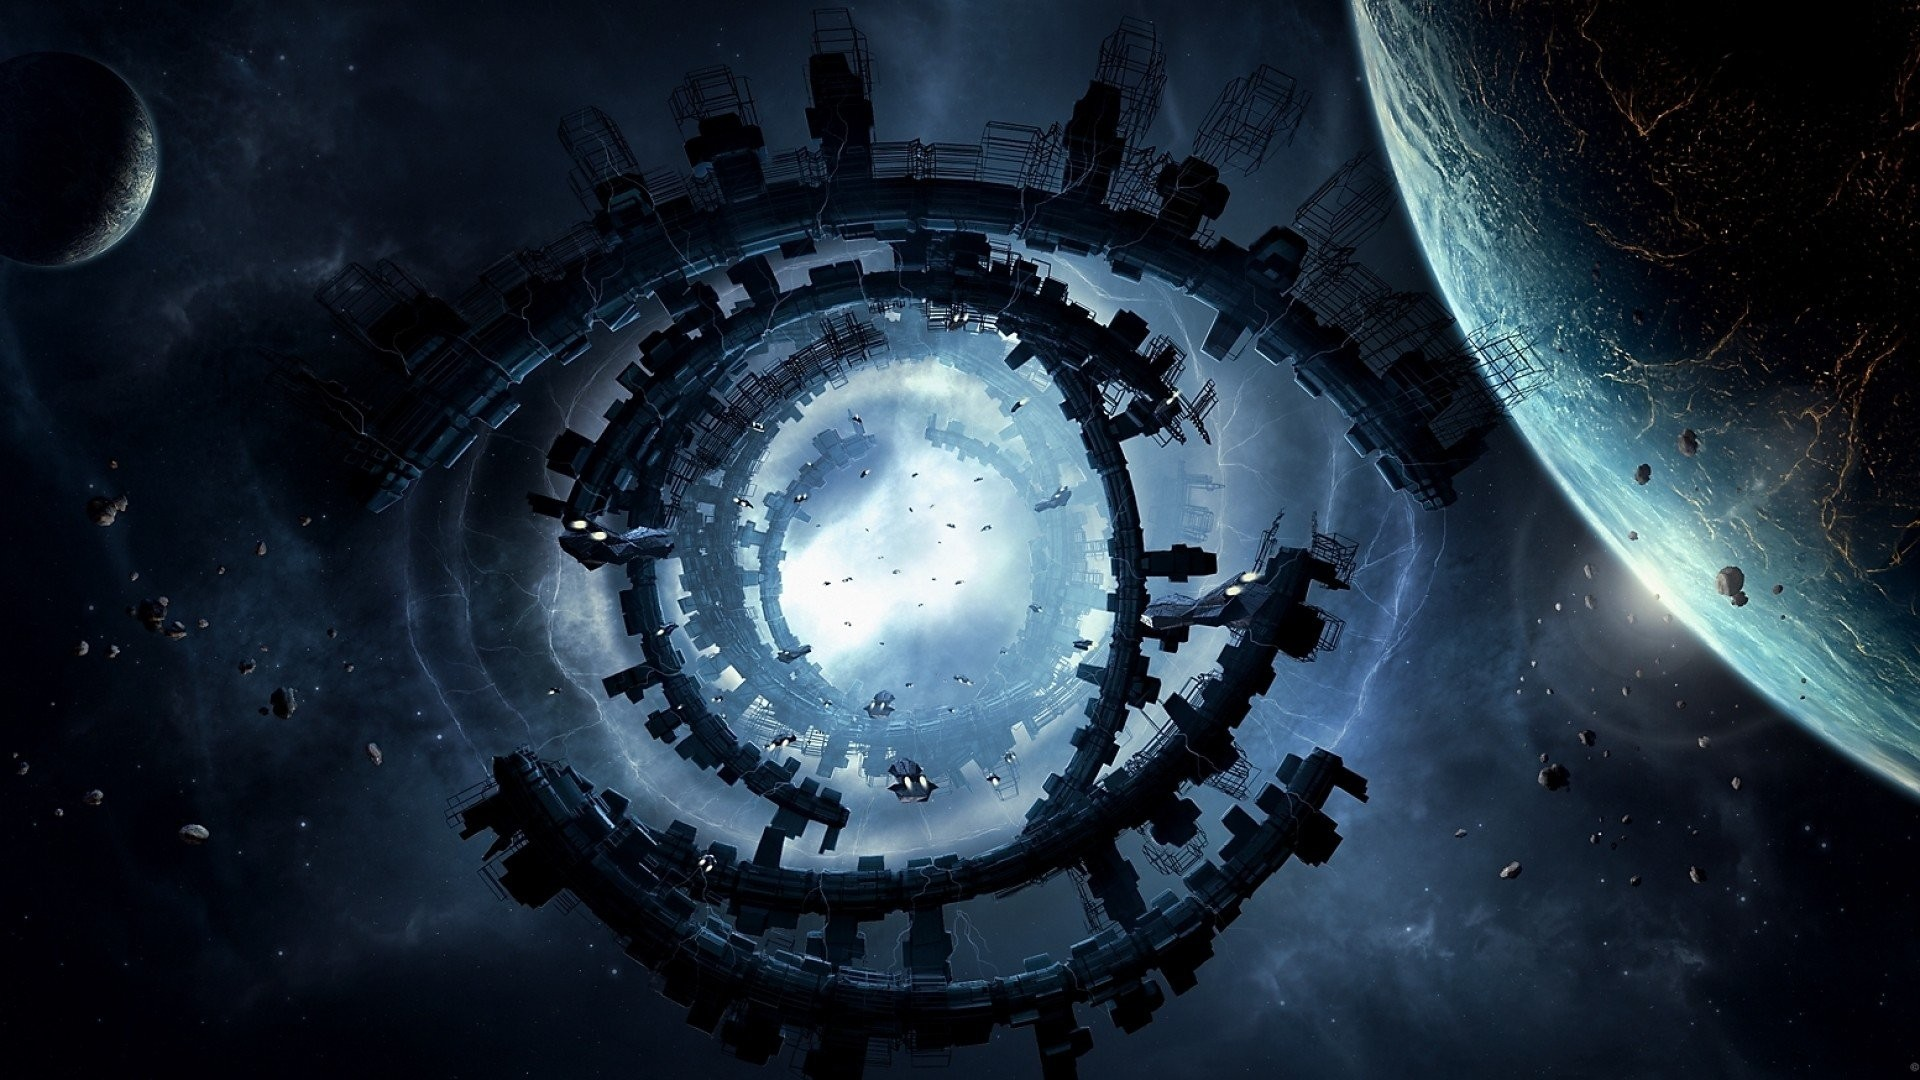 eyes outer space planets Moon ships buildings fantasy art spaceships space  station structure moons Big Bang